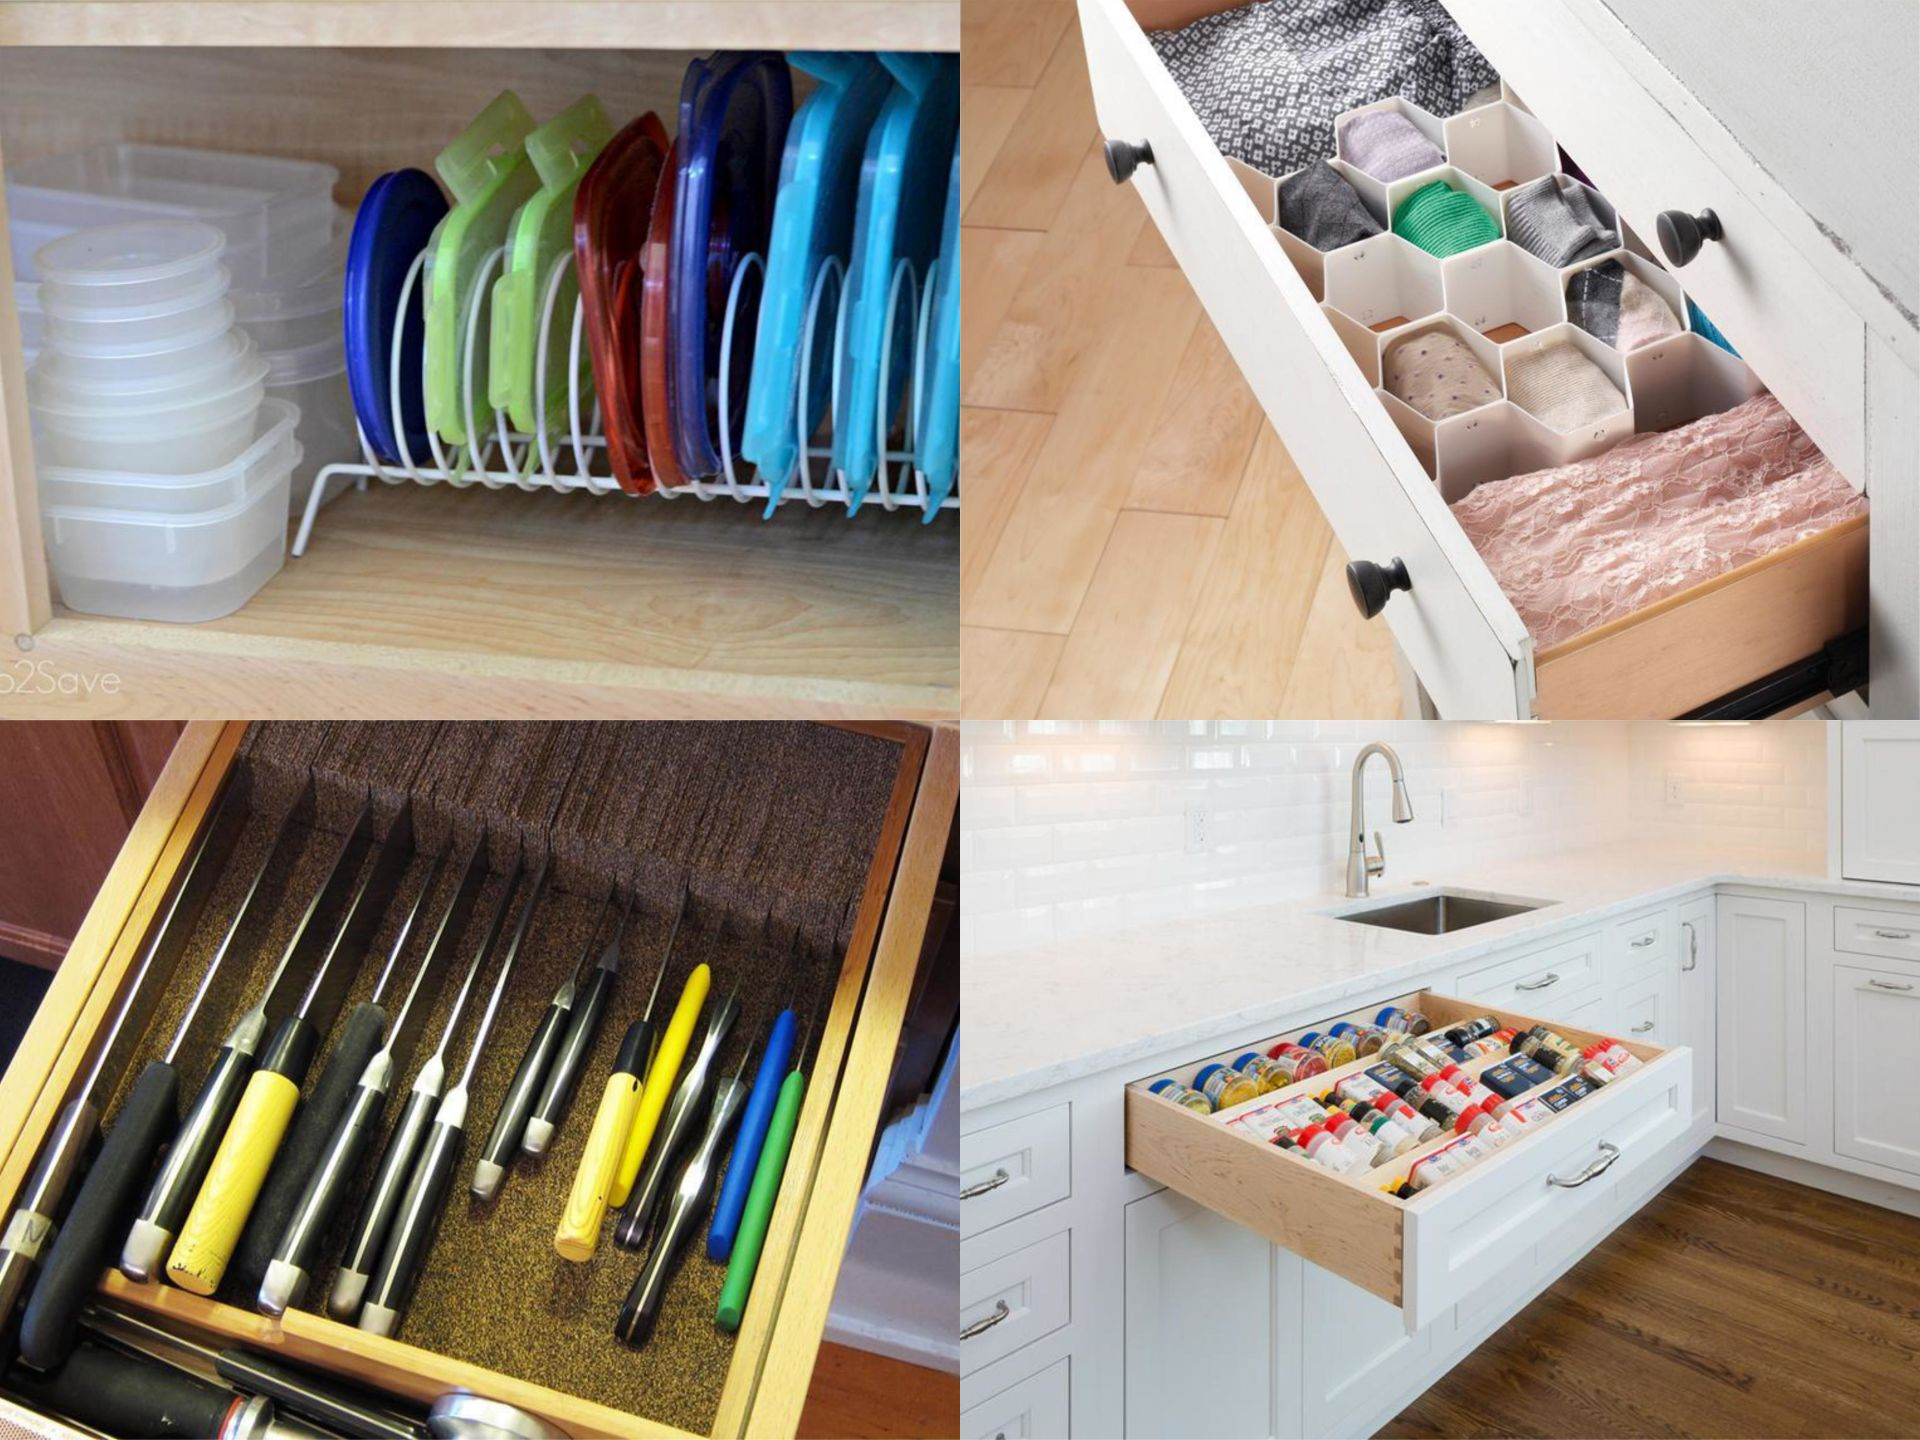 Four Solutions For Messy, Overflowing Drawers